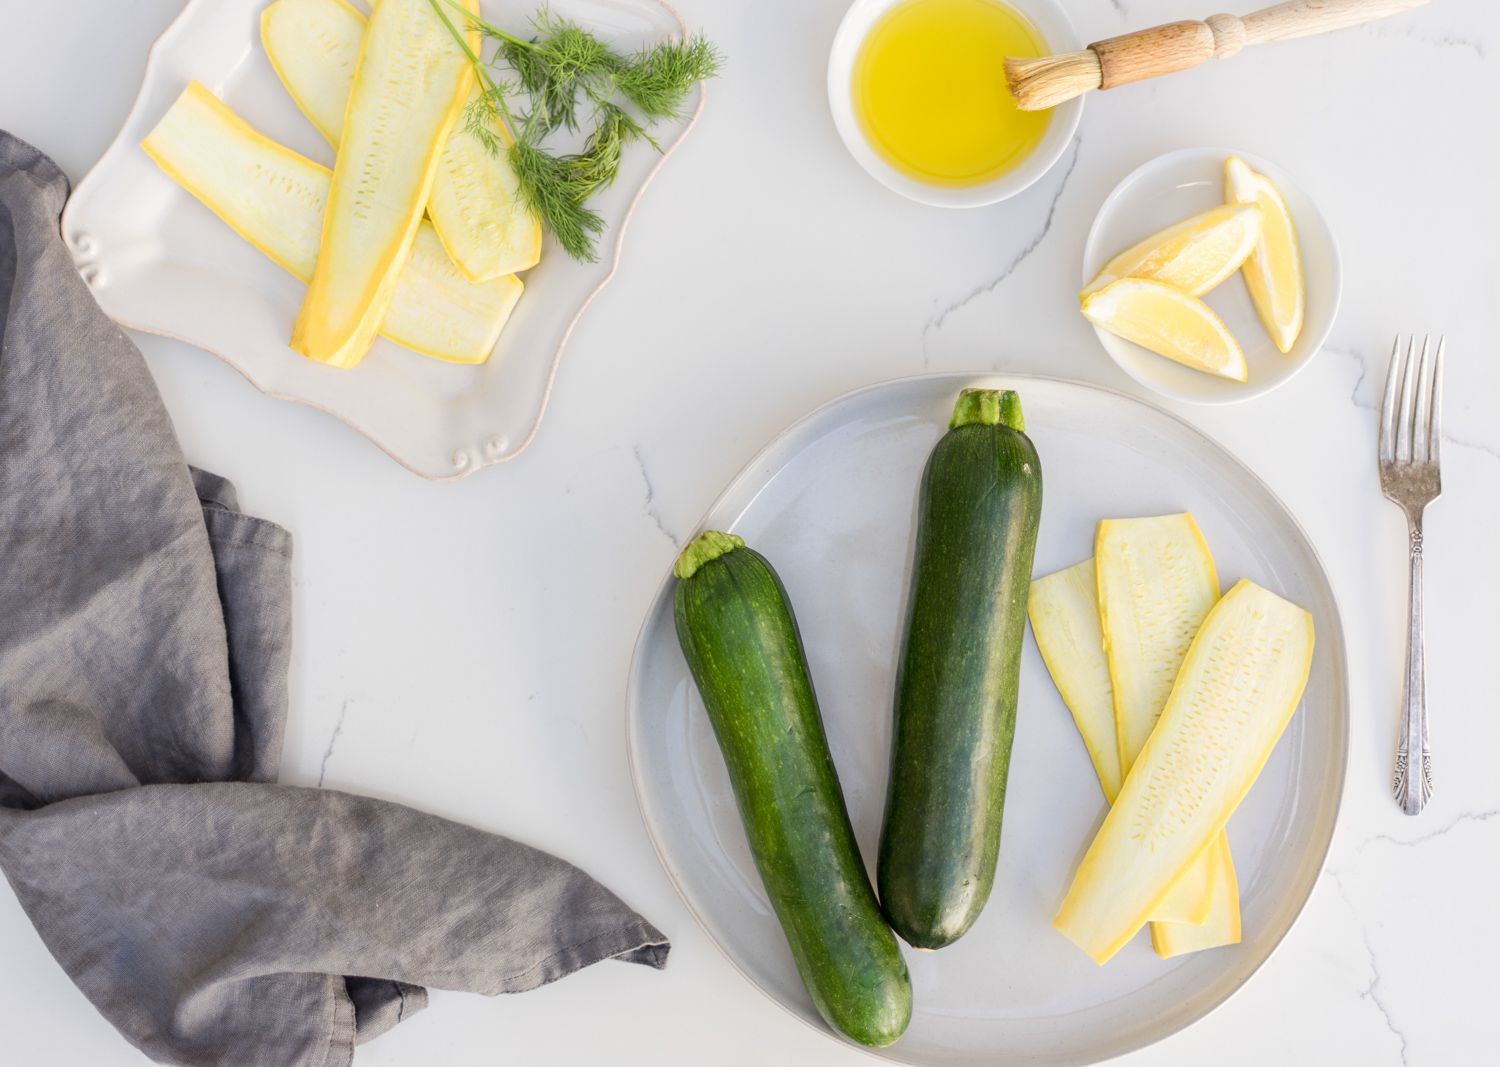 Grilled Zucchini and Summer Squash Recipe Ingredients